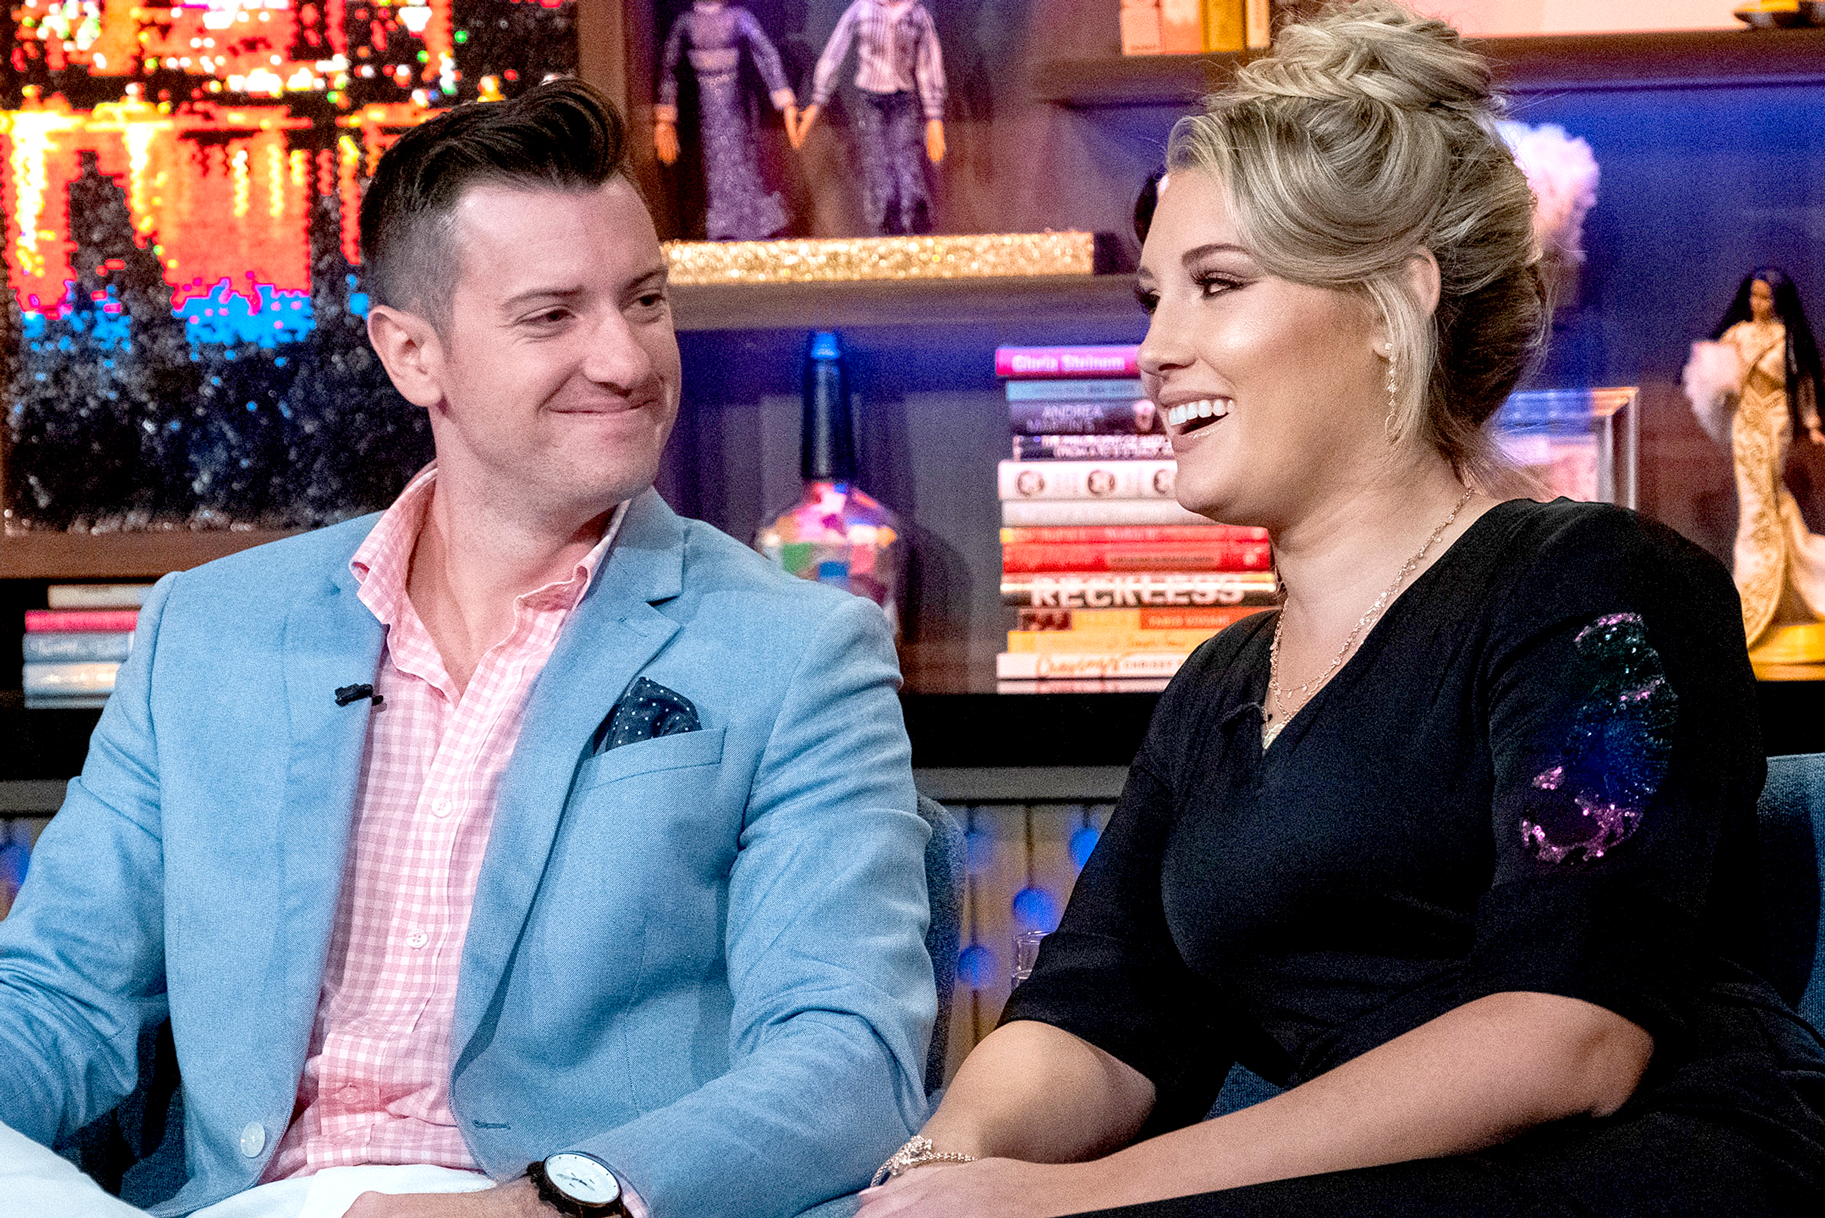 Colin Macy O'Toole and Hannah Ferrier on Watch What Happens Live with Andy Cohen